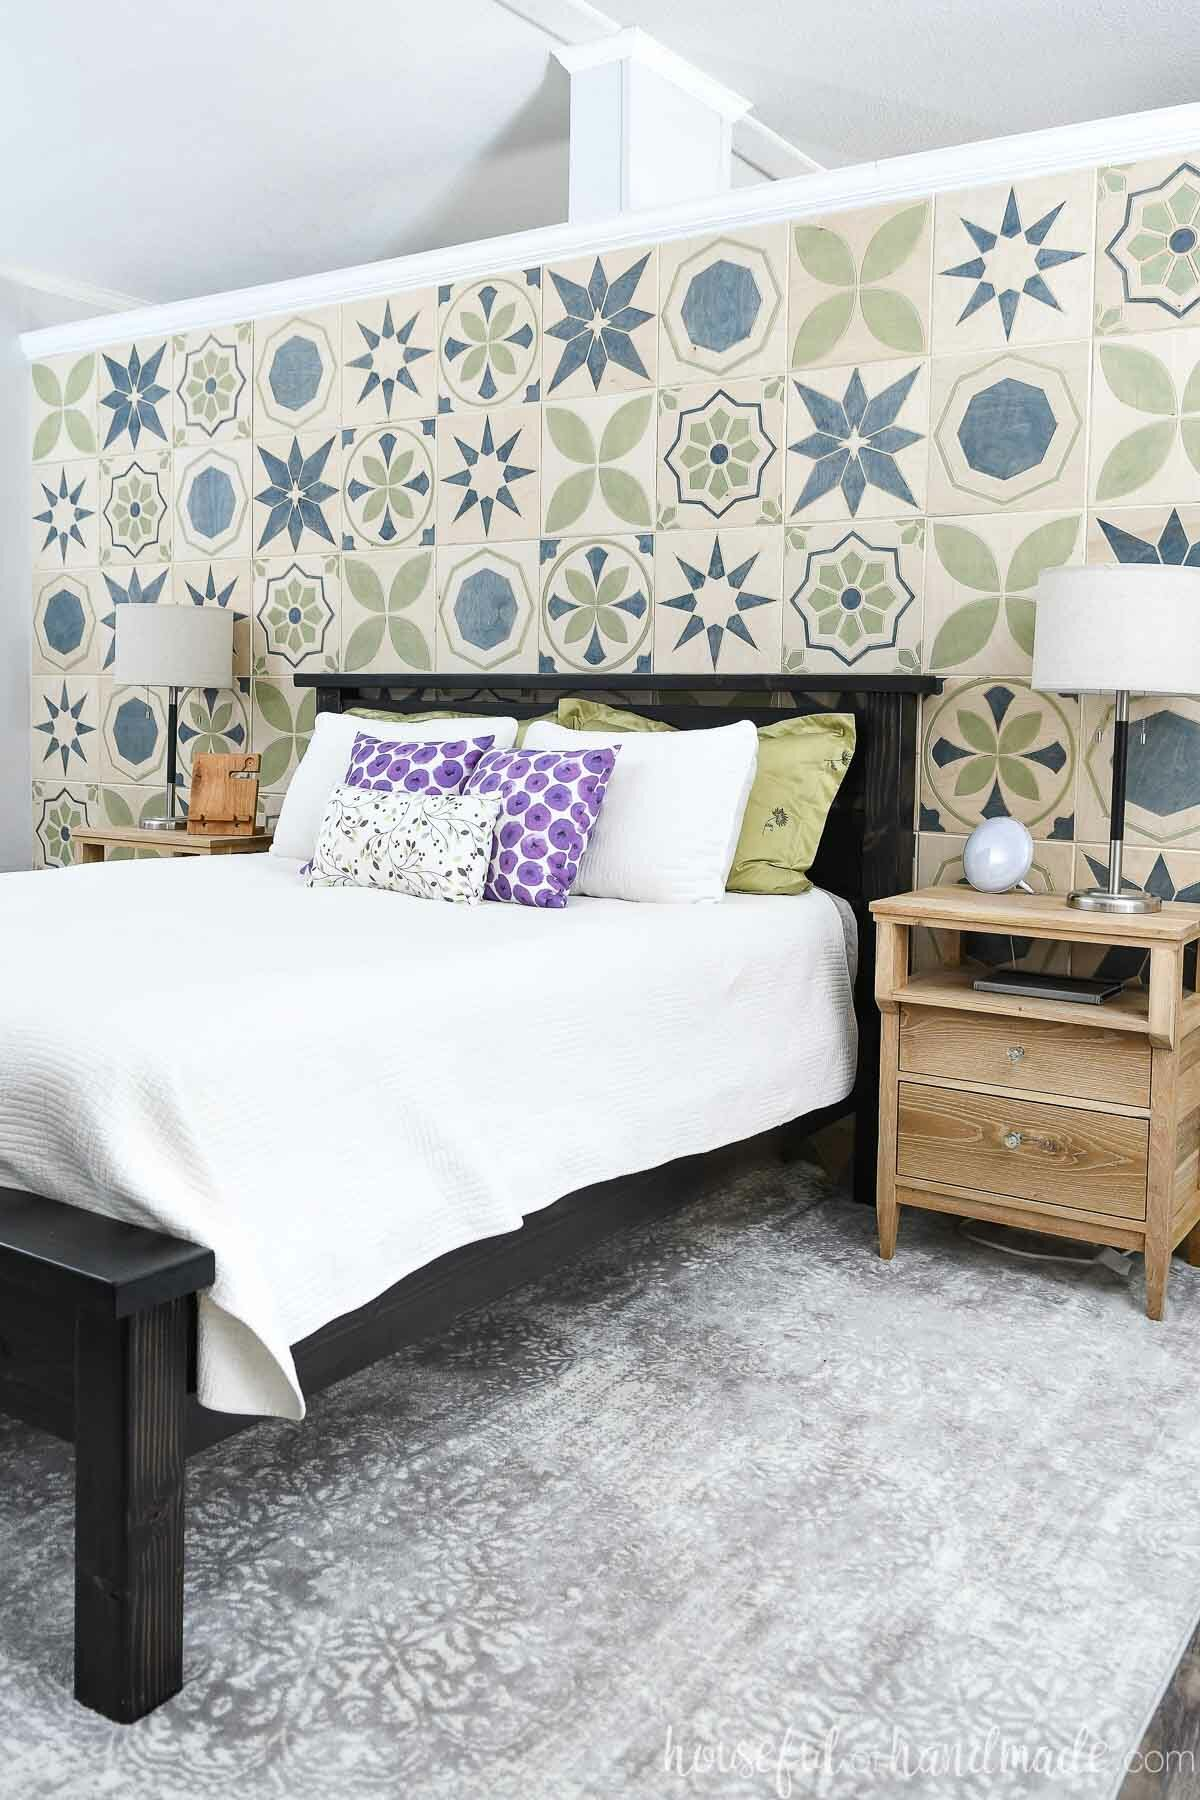 Bedroom accent wall of patterned tiles carved with a CNC machine.